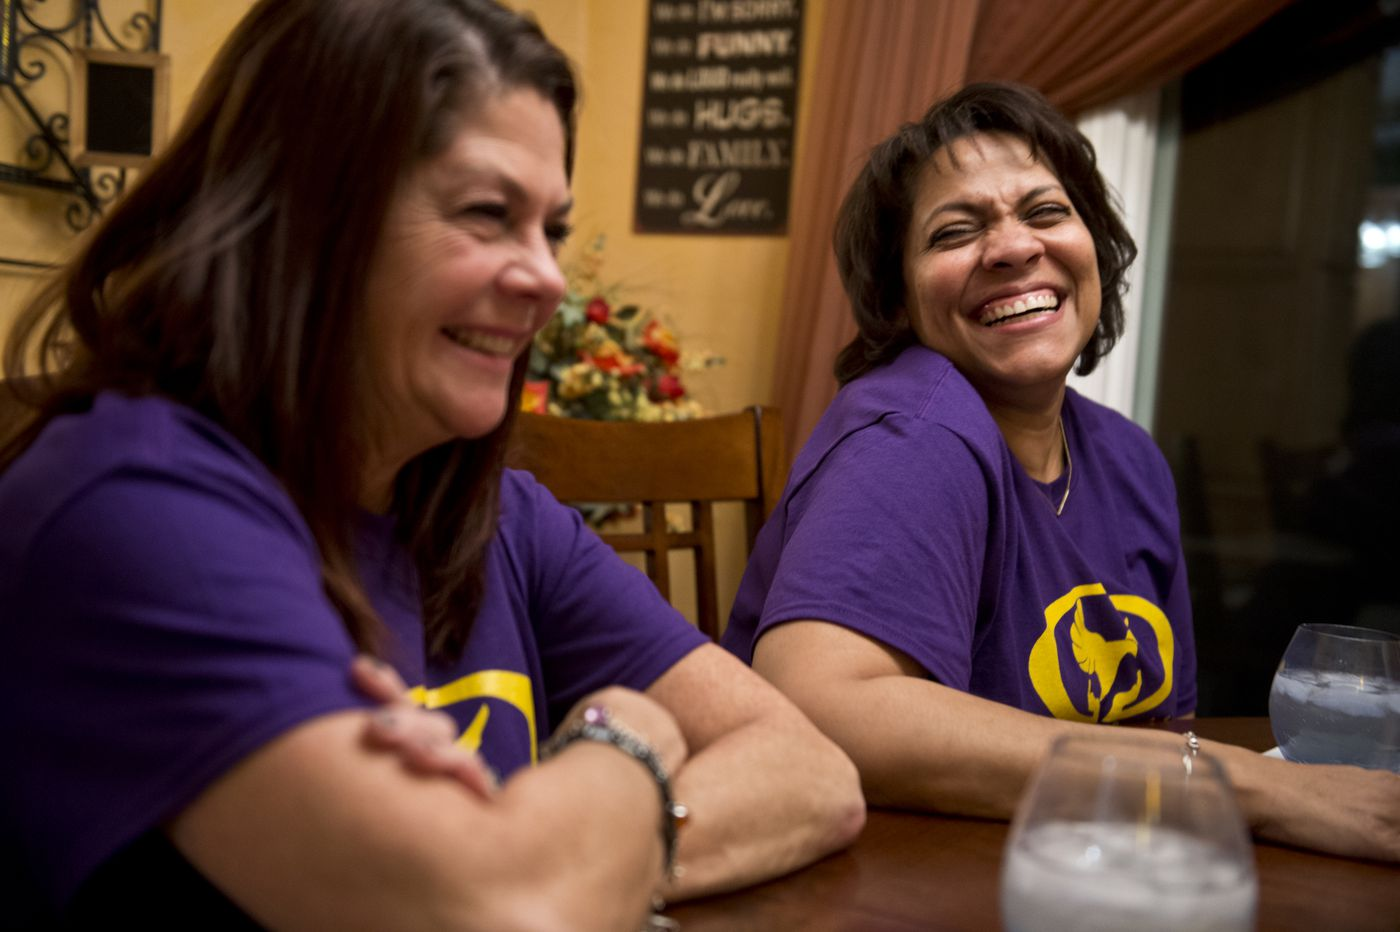 Jaimie Farrell, left, and Michele McKean talk at a dinner party McKean hosted on Dec. 1 for friends who attended the Route 91 Harvest Festival months earlier. (Marc Lester / ADN)